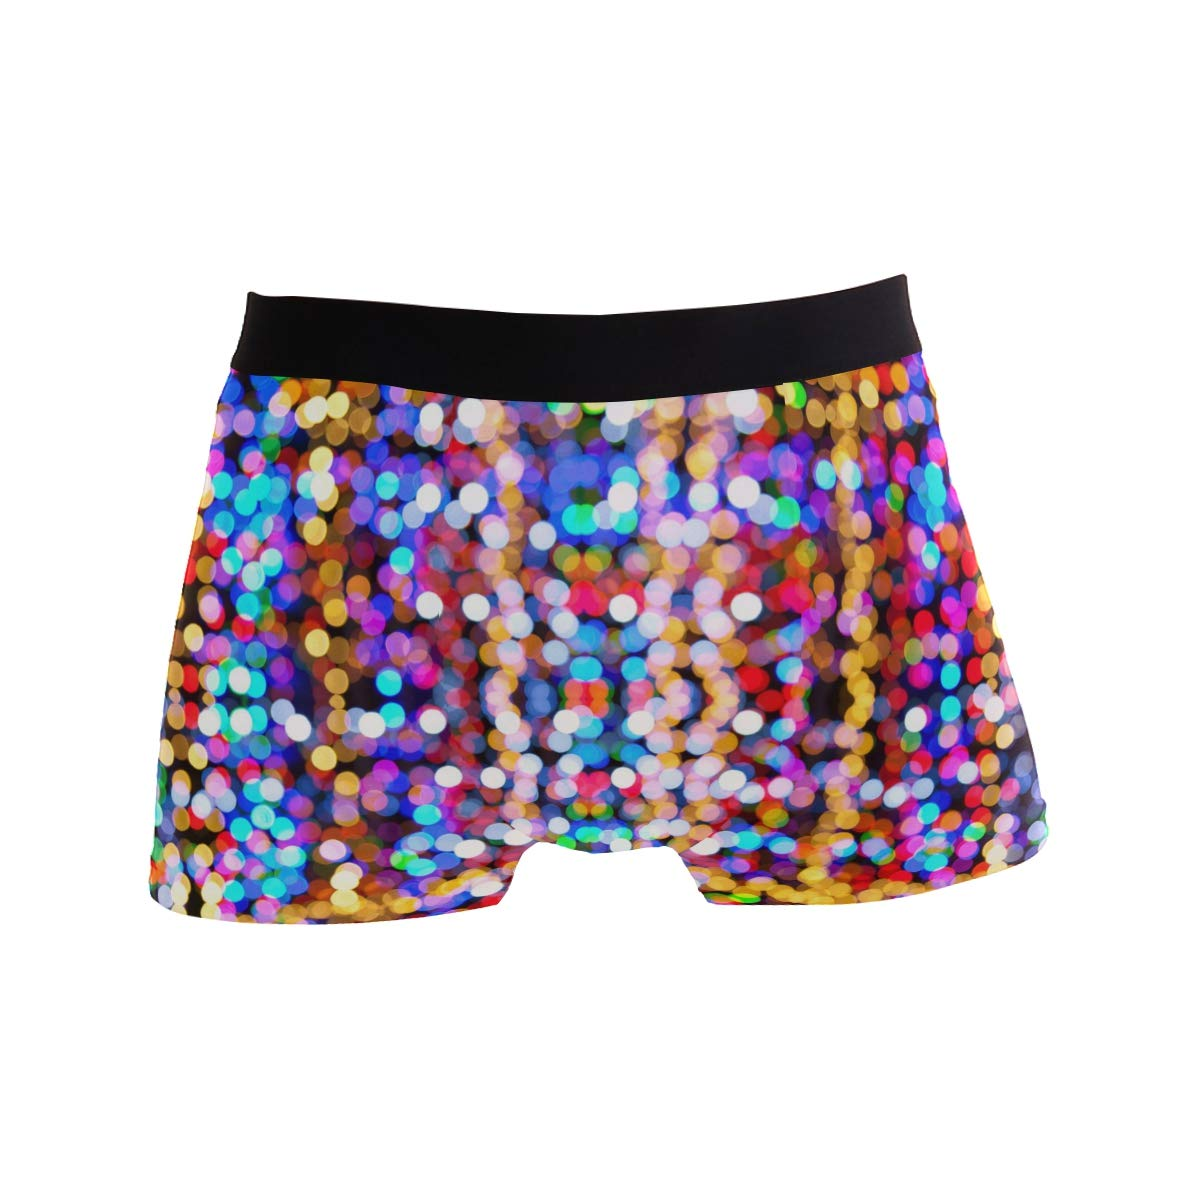 Hipster Unique Blur Blurred Christmas Assorted-ColorBoxer Briefs Mens Underwear Boys Breathable Stretch Low Rise